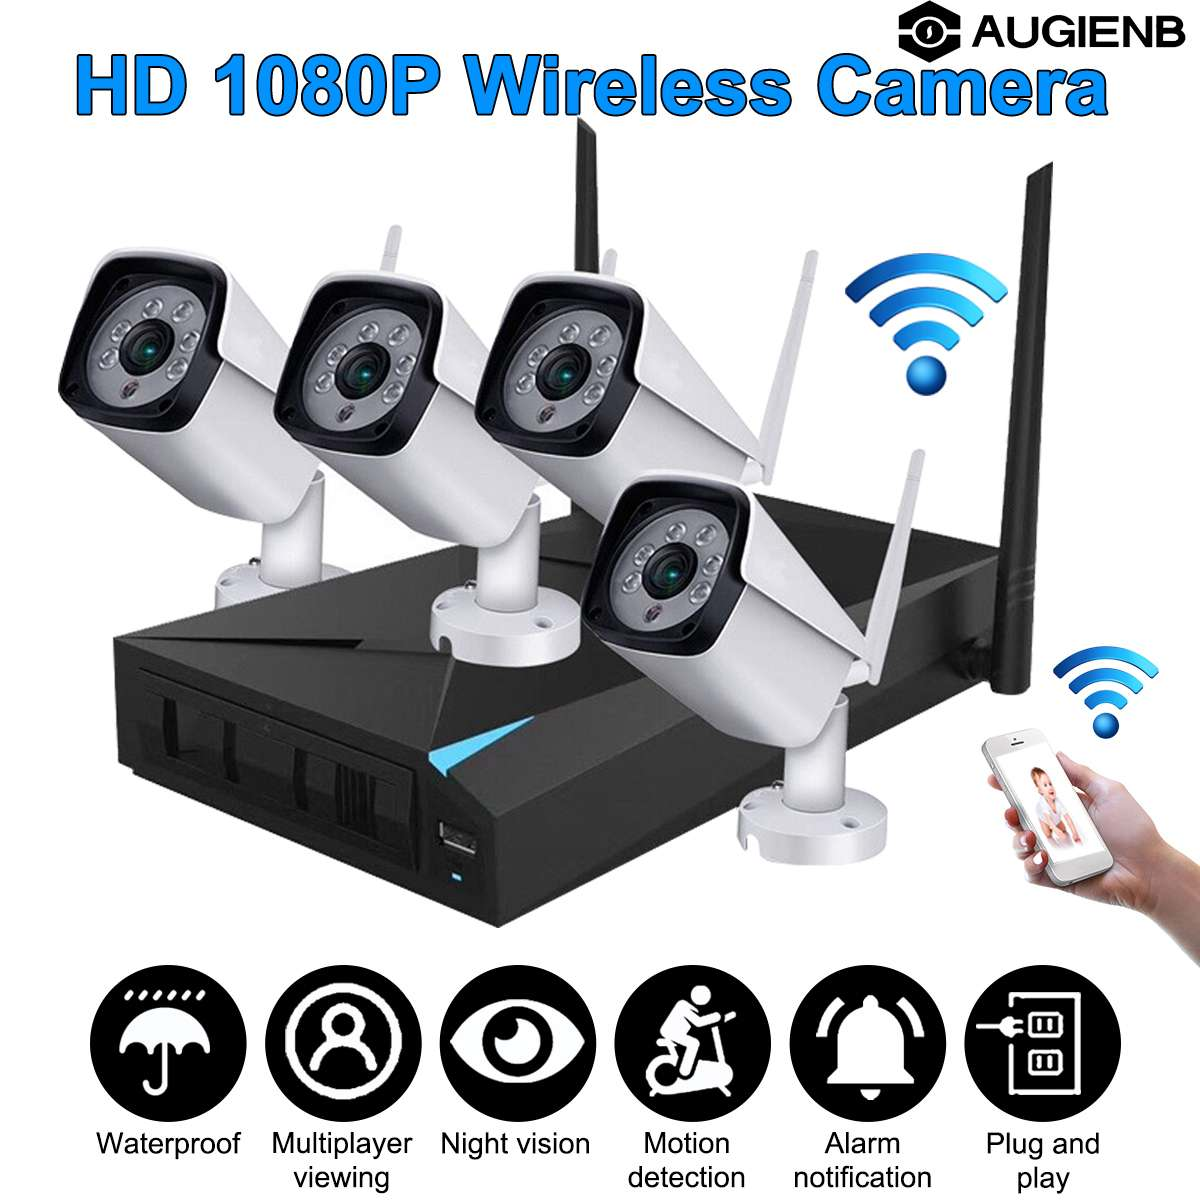 1080P Wireless Security Camera System 4CH NVR WiFi IP Cameras CCTV Video Surveillance System Kit Plug